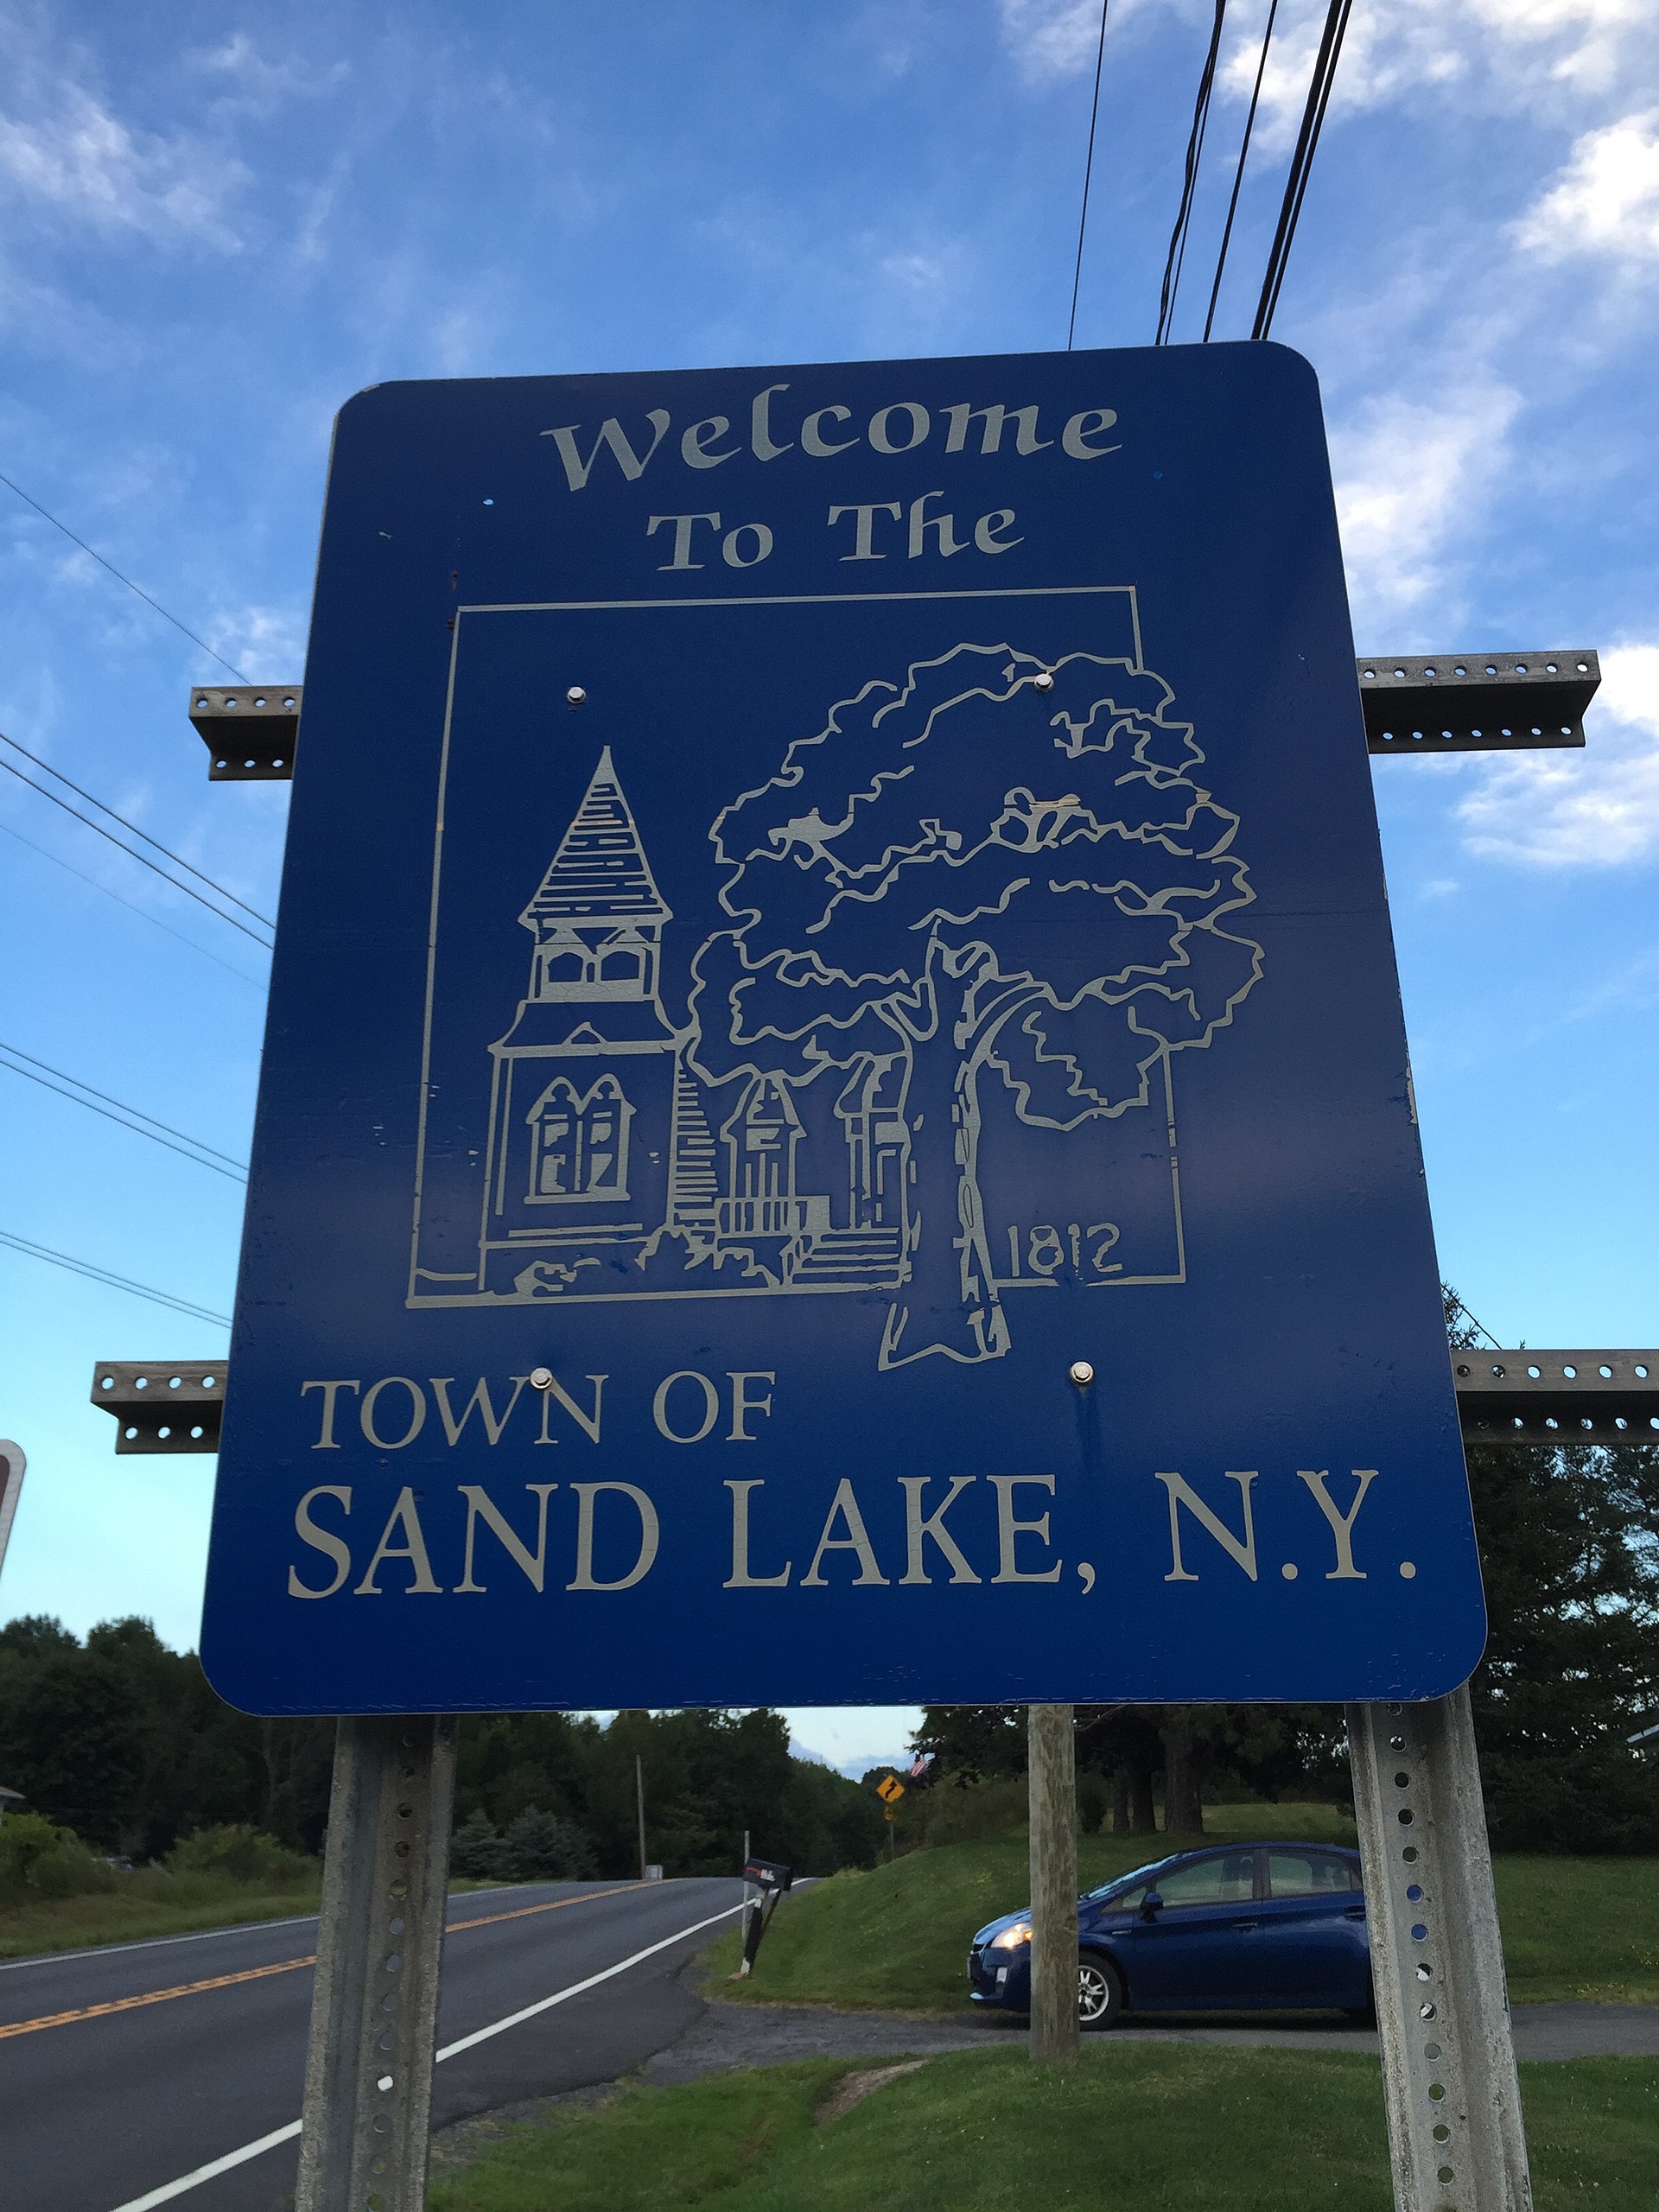 west sand lake chat West sand lake new york animal adoption is always a definite choice that a person can make it's not only dogs and cats west sand lake ny animal adoption also includes birds, reptiles, rabbits, even fish and rats came be adopted.